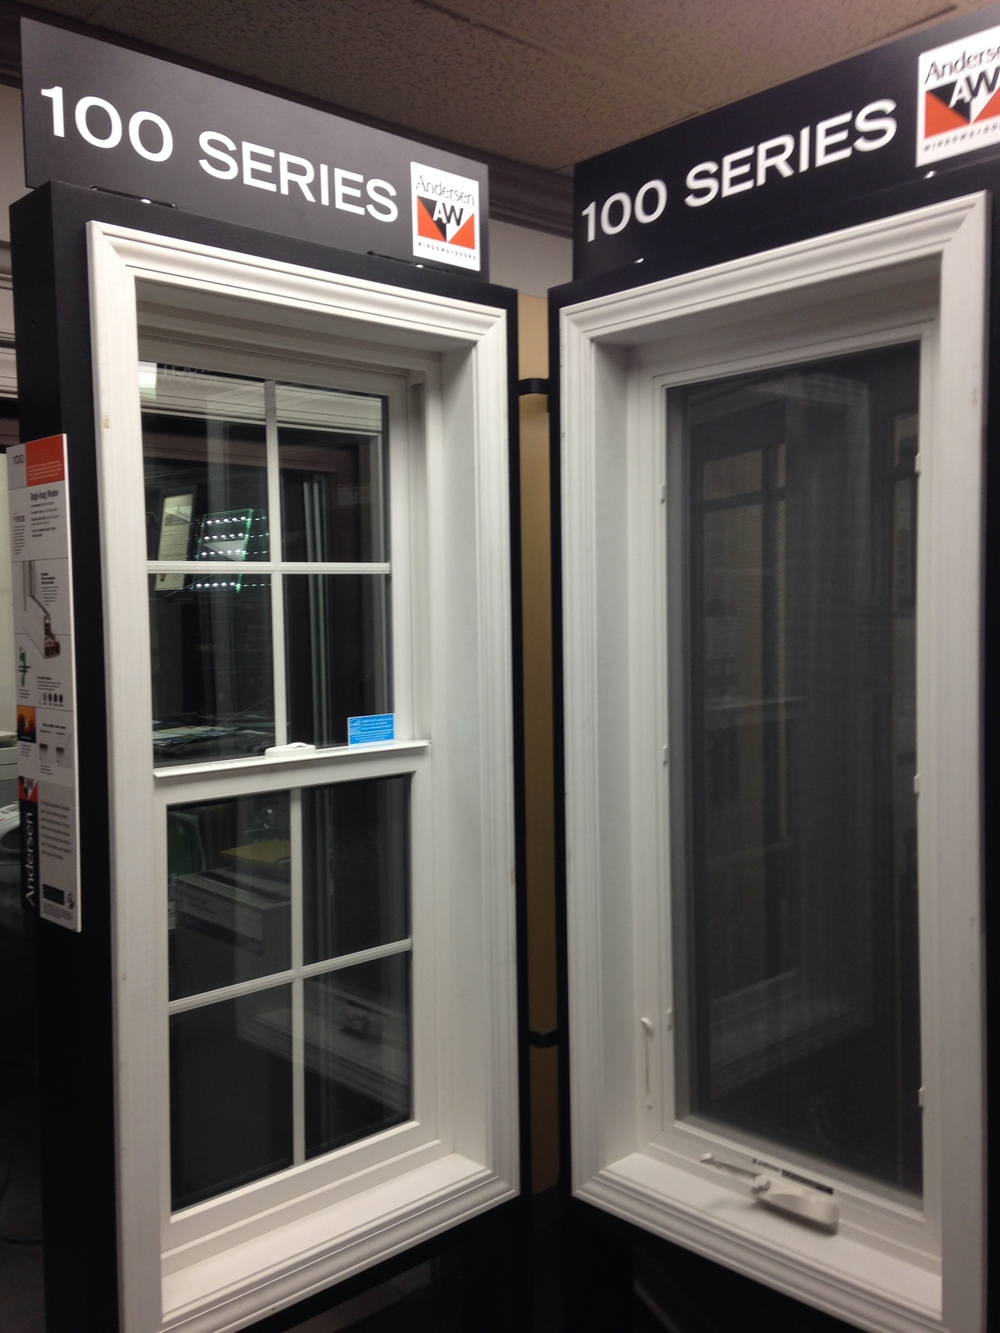 ACE Glass carries Andersen 100 Series Windows and Doors.